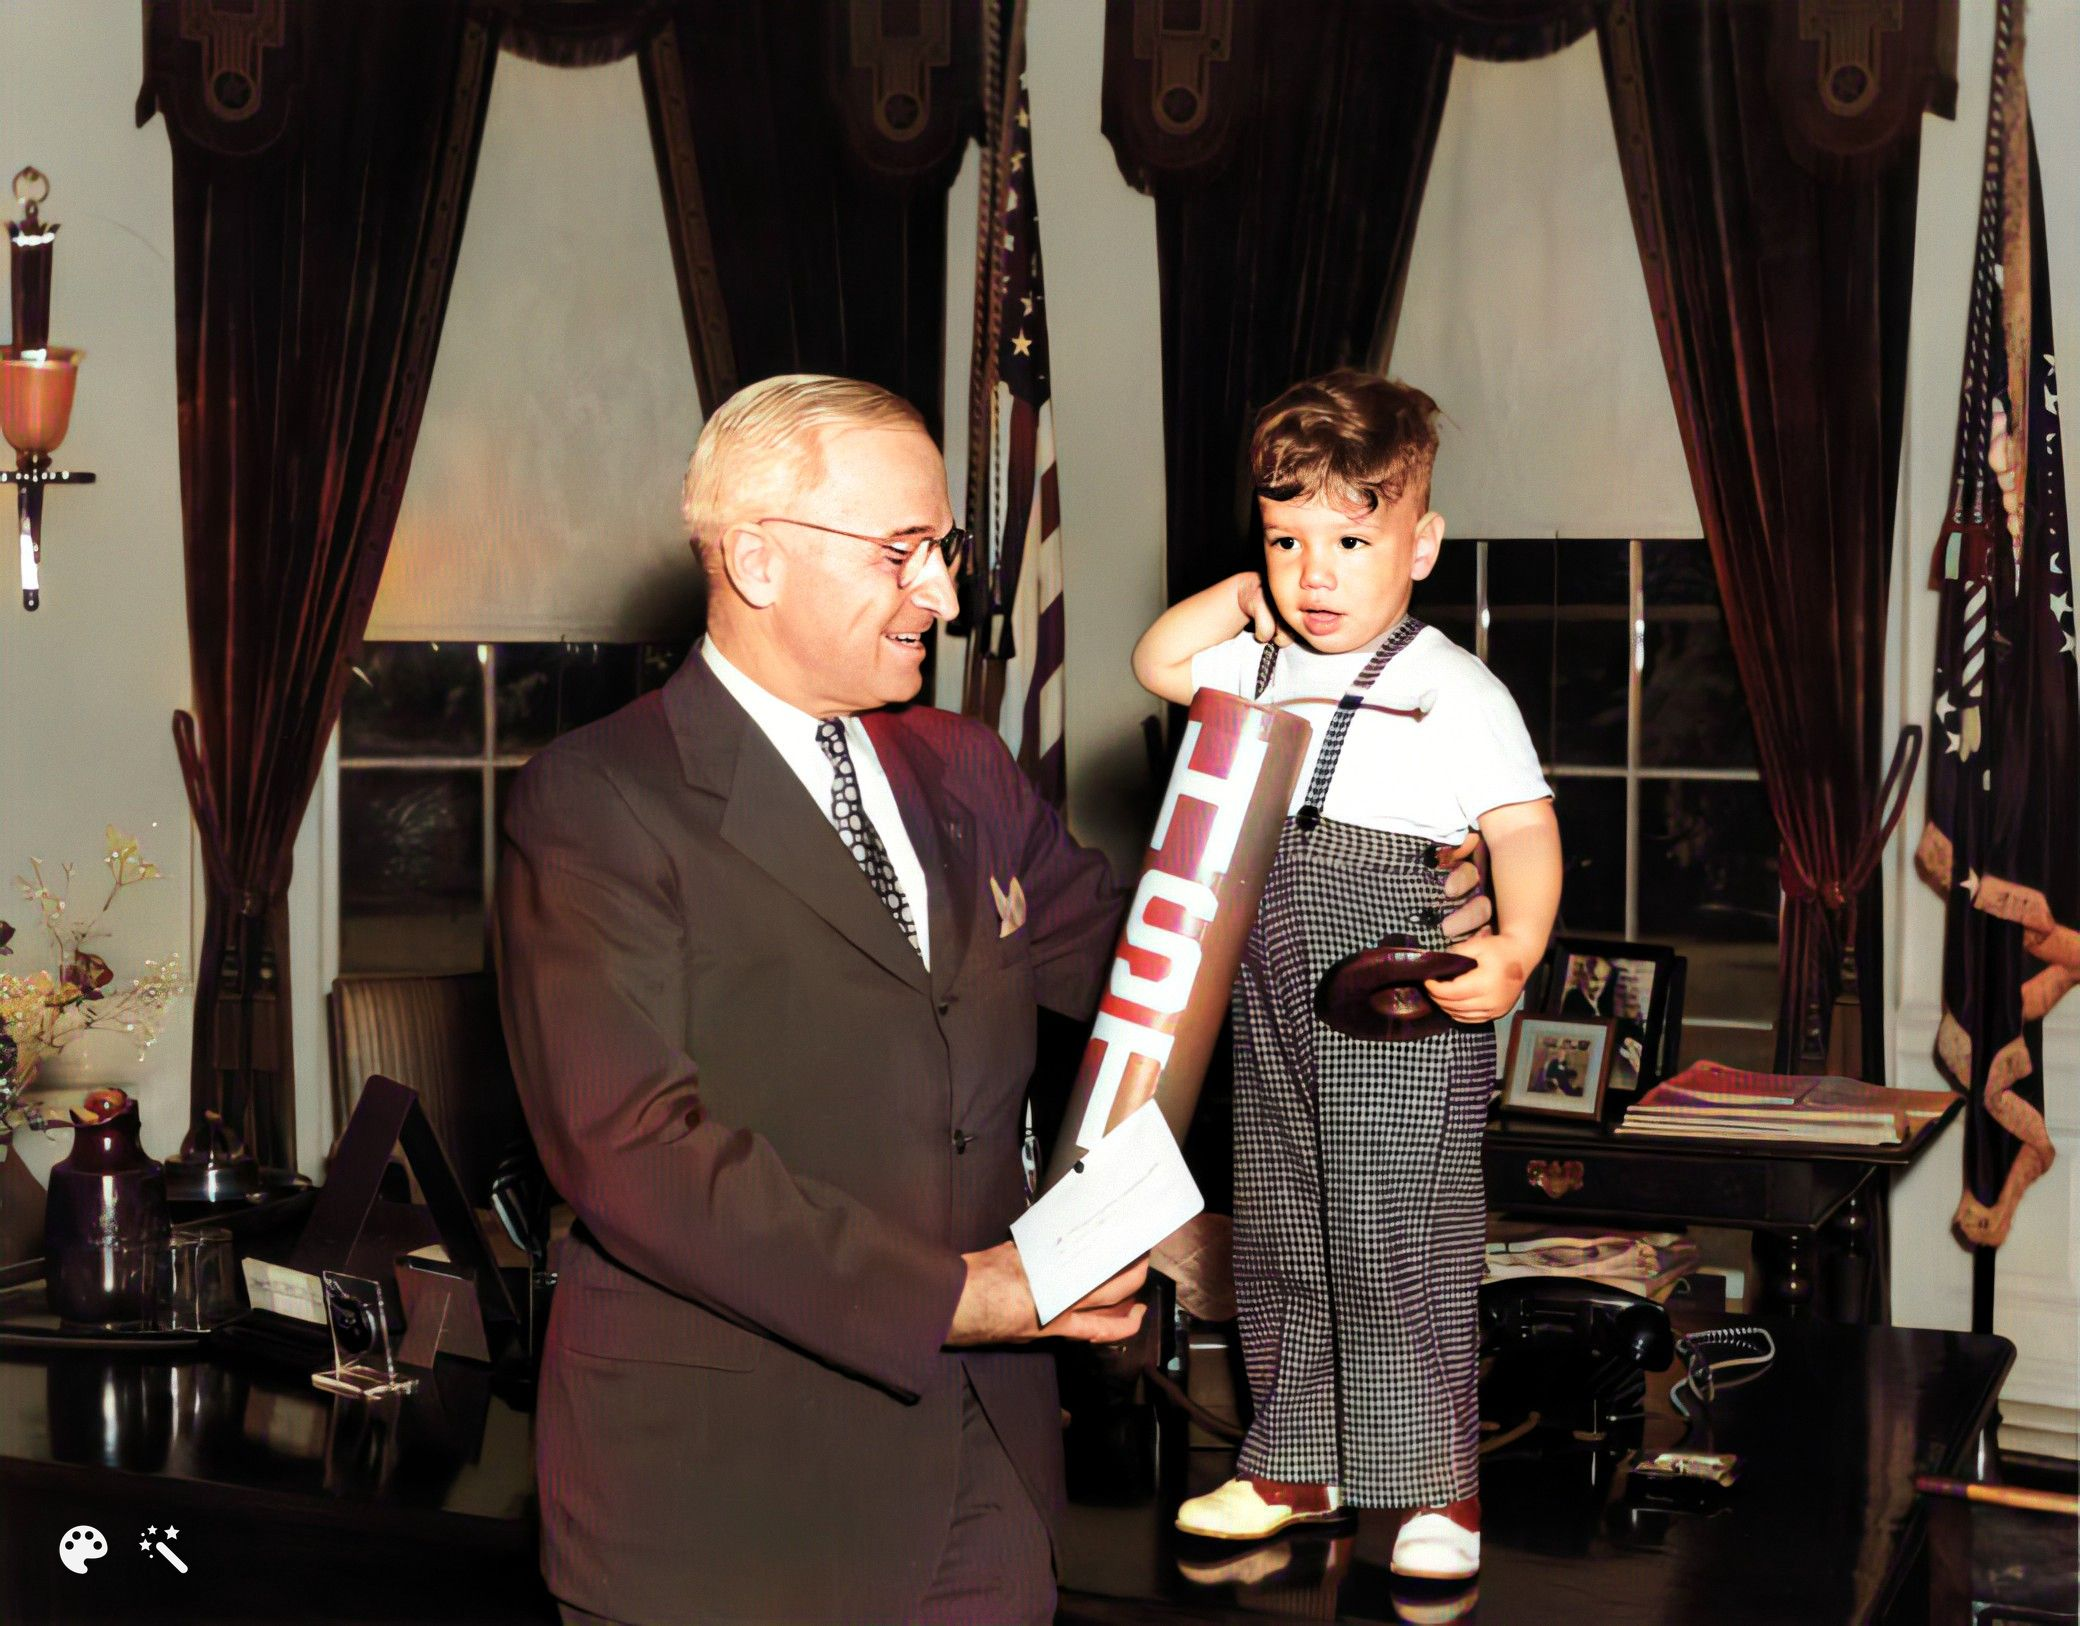 President Harry S. Truman receives the gift of a firecracker from a young boy in the Oval Office of the White House, July 4, 1947. Courtesy of the Library of Congress